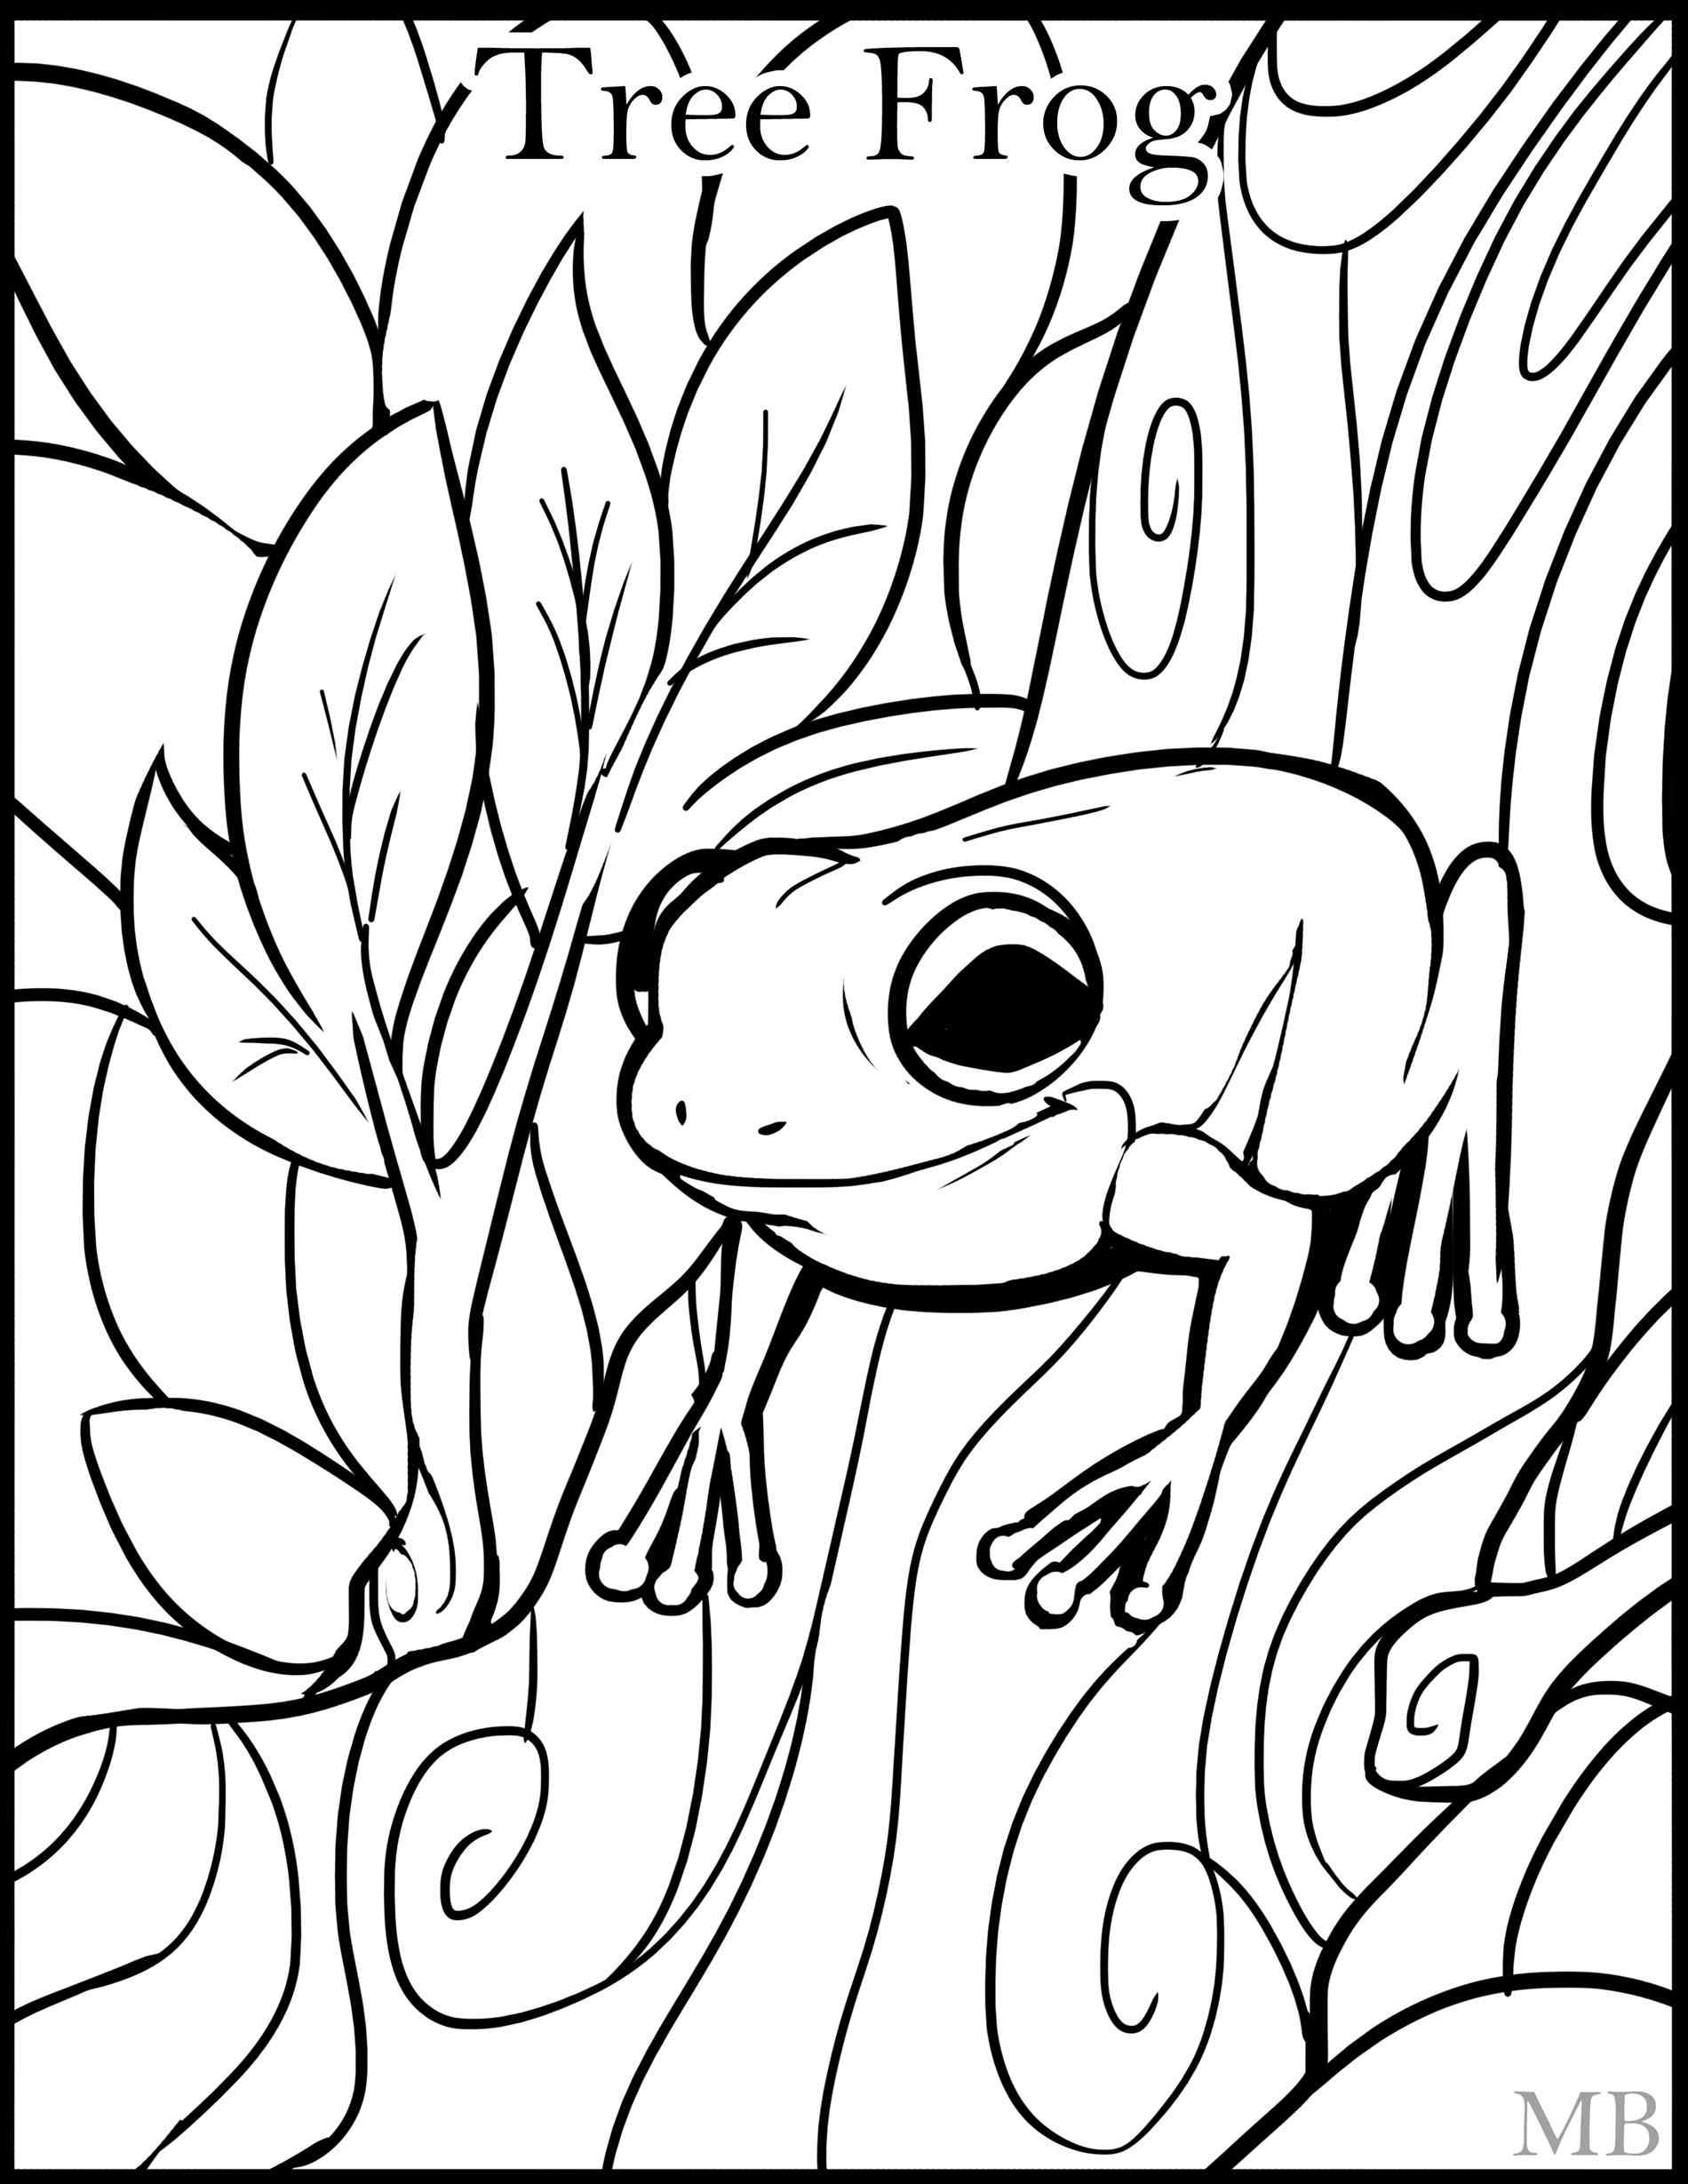 free frog coloring pages free printable frog coloring pages for kids frog coloring pages free